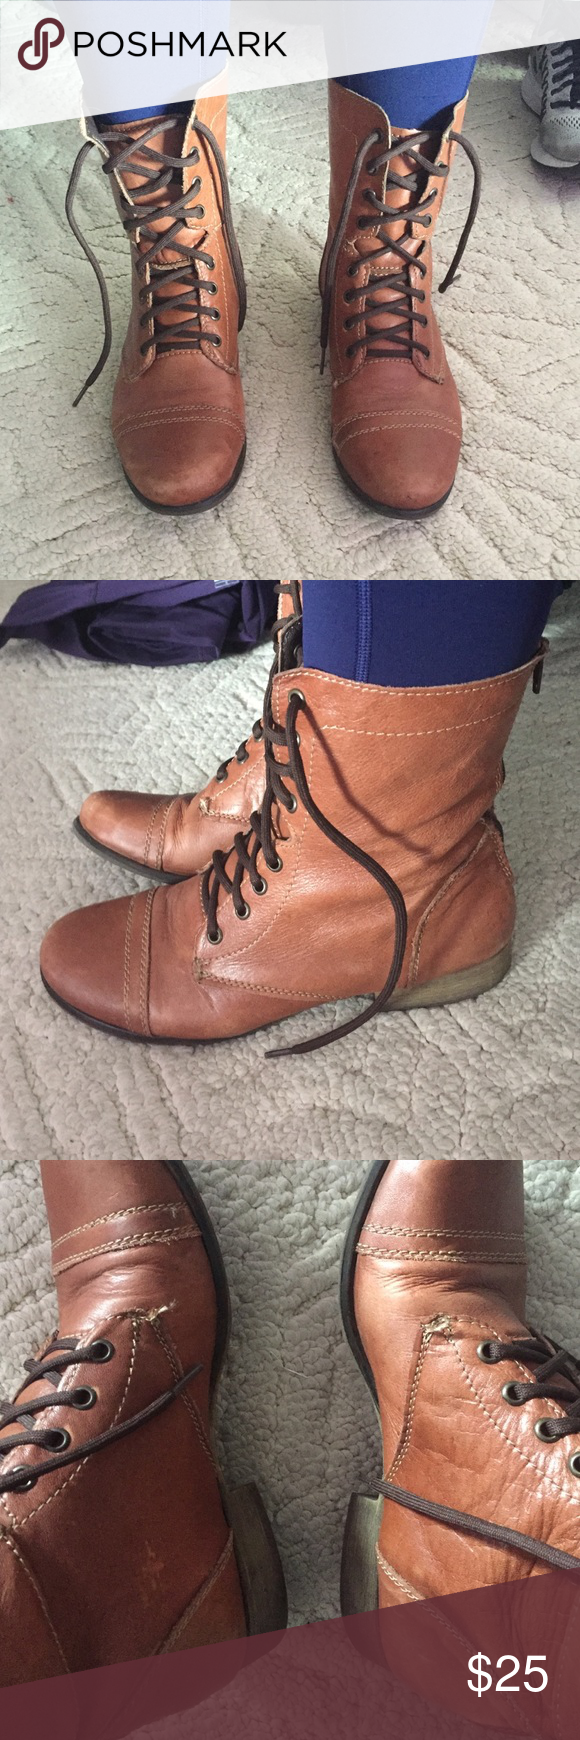 Steve Madden Boots These are size 10 brown leather Steve Madden combat boots. The exterior definitely shows some wear, but I think they still look great (it just adds some character ;-) )! They're very comfortable and are a great color. Steve Madden Shoes Combat & Moto Boots